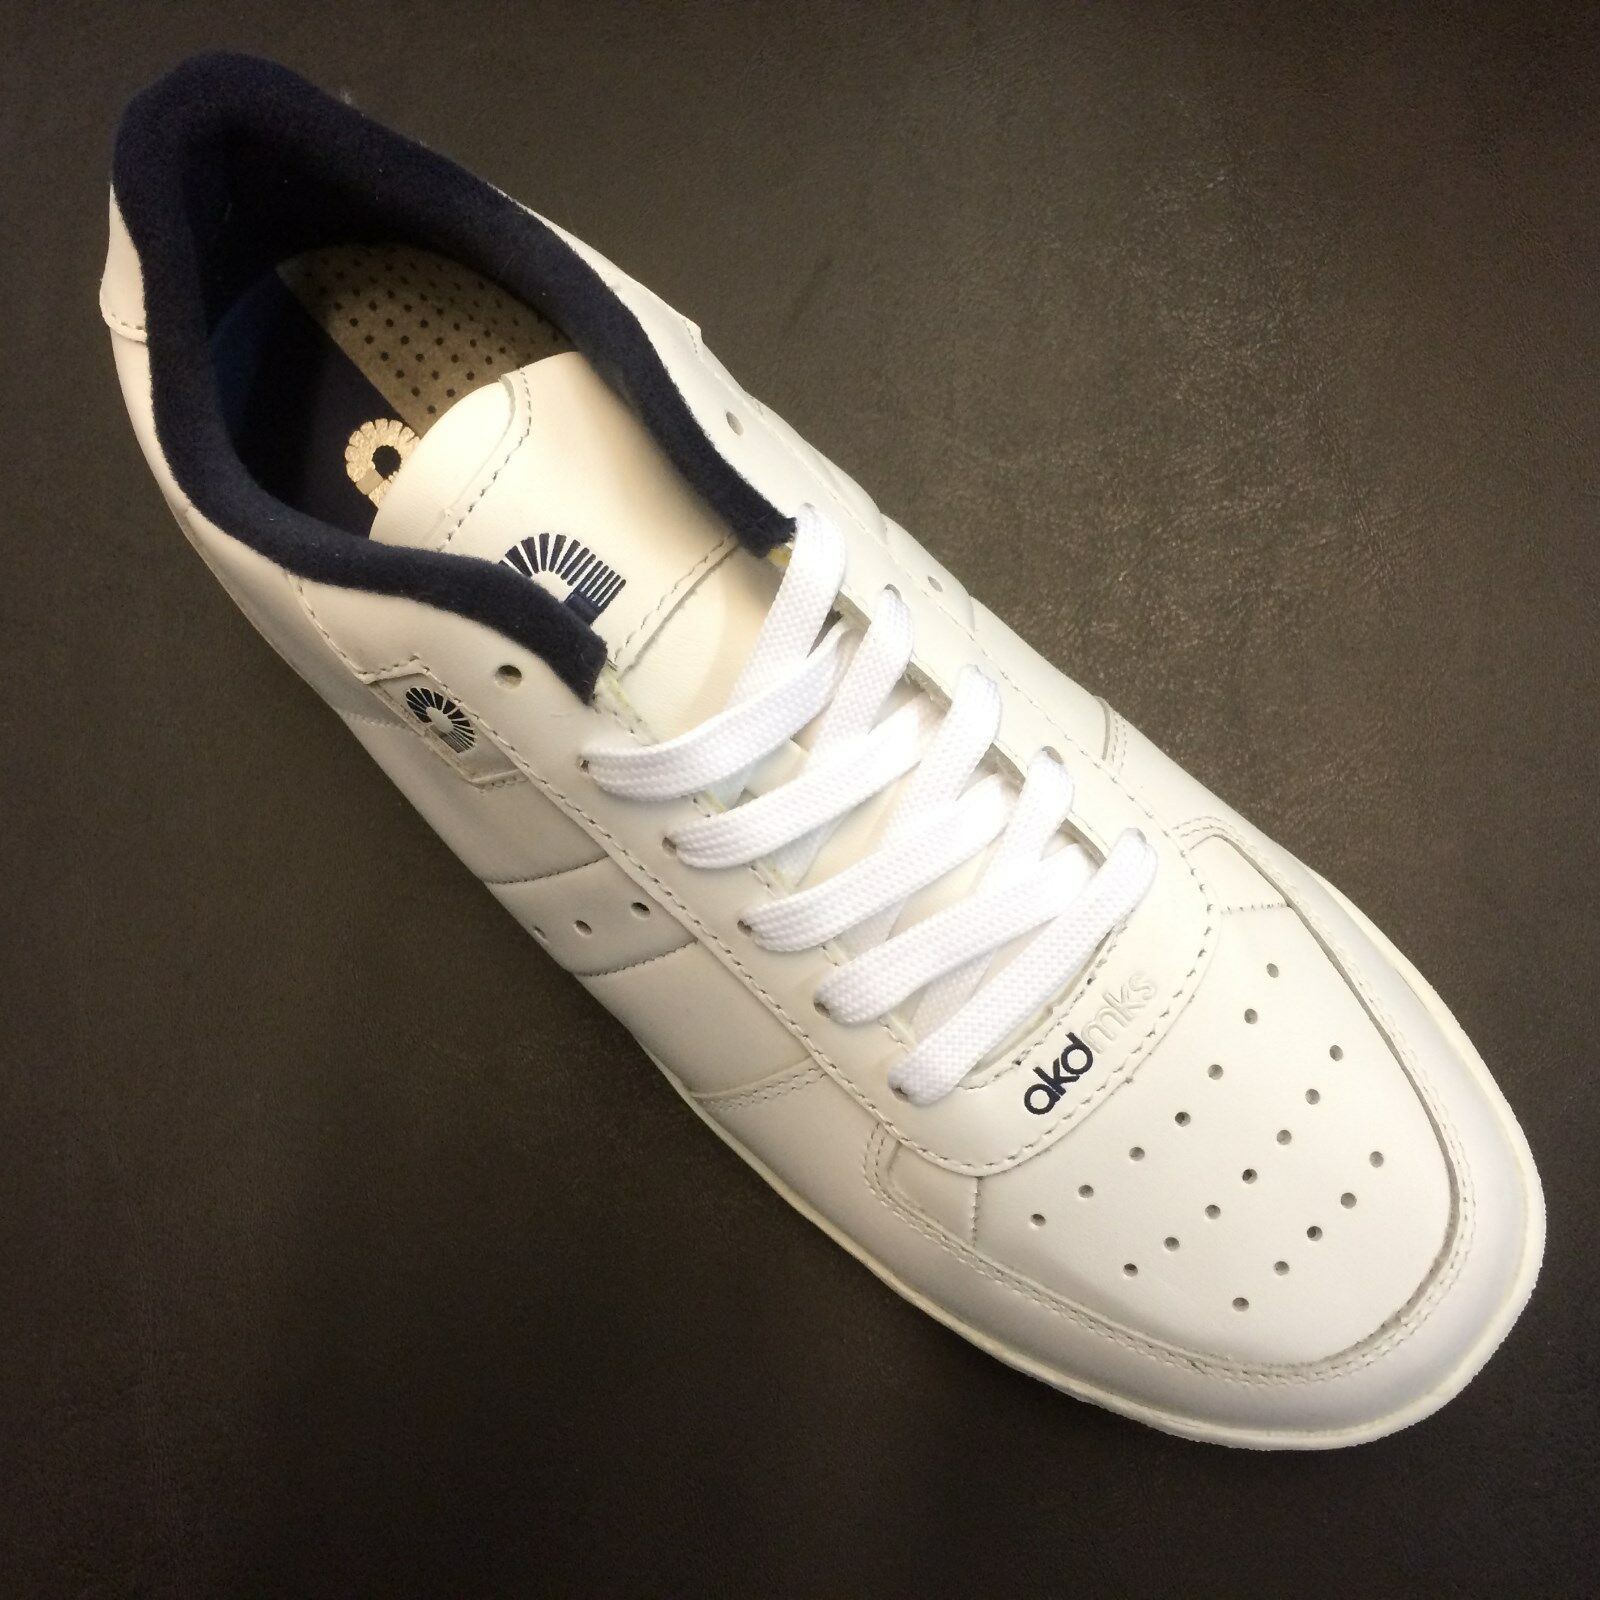 Uomo akademiks INTELLECT White/Navy Low Top Shoes AMA001-119